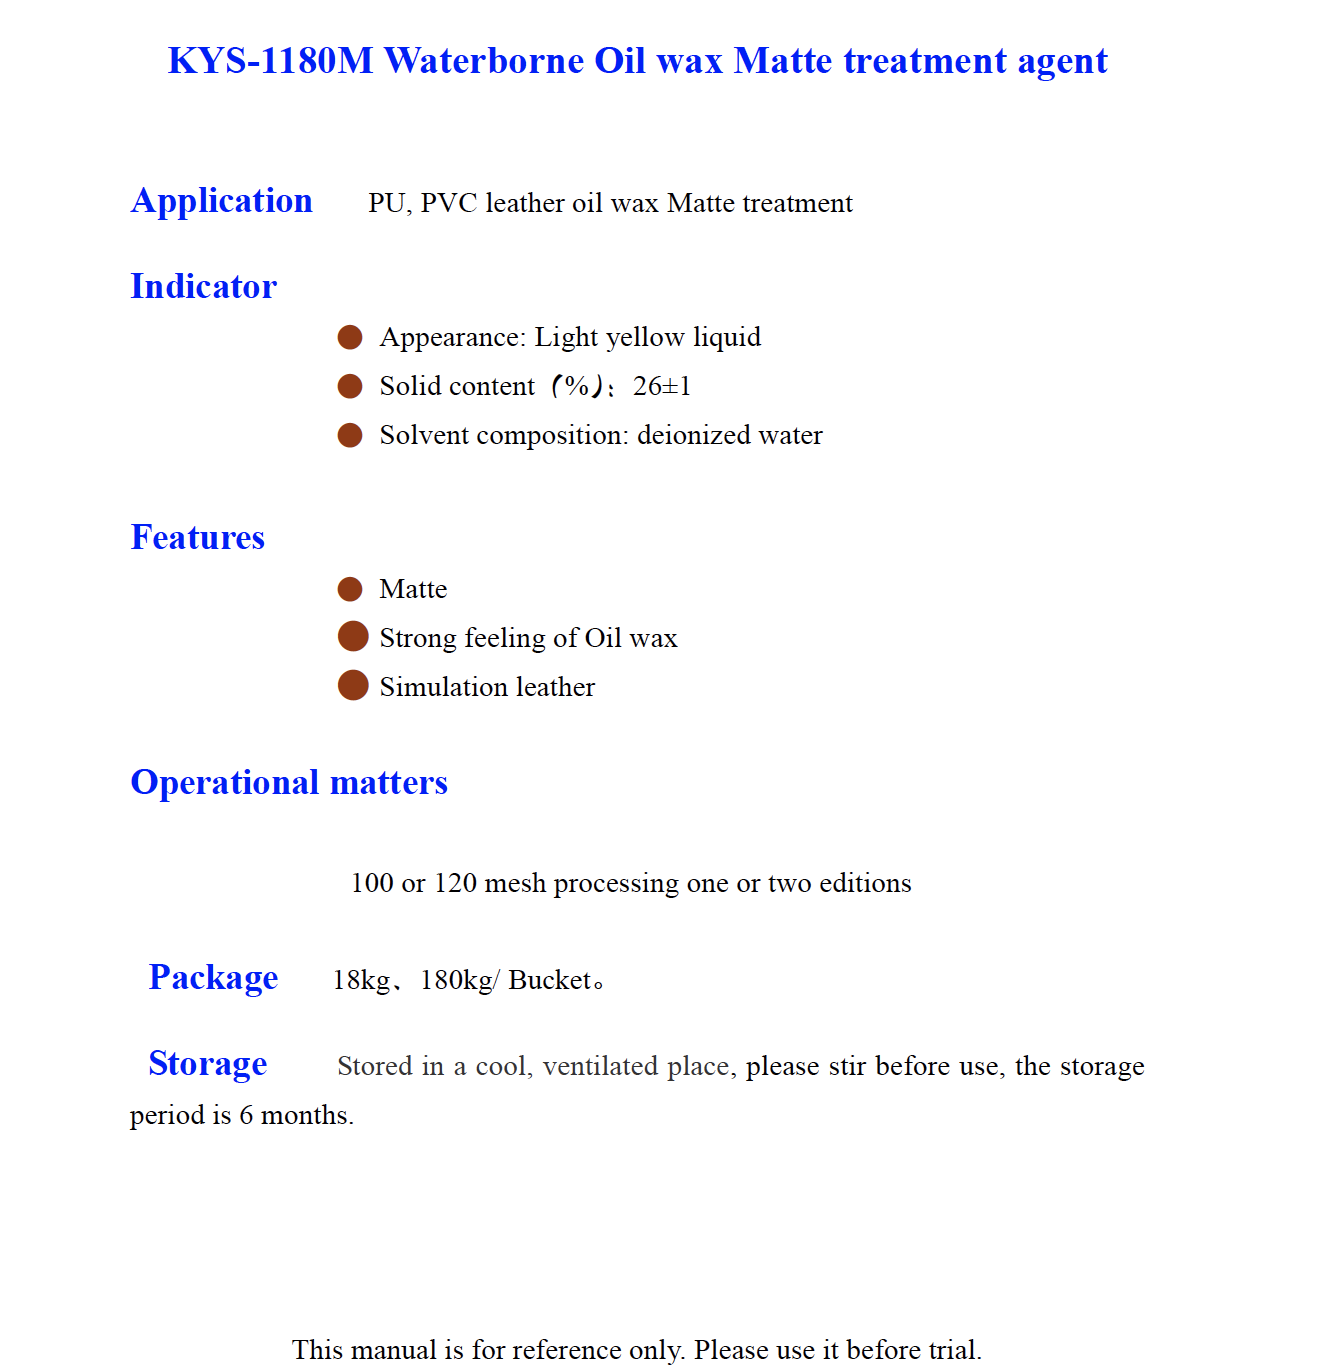 KYS 1180M Waterborne Oil wax Matte treatment agent